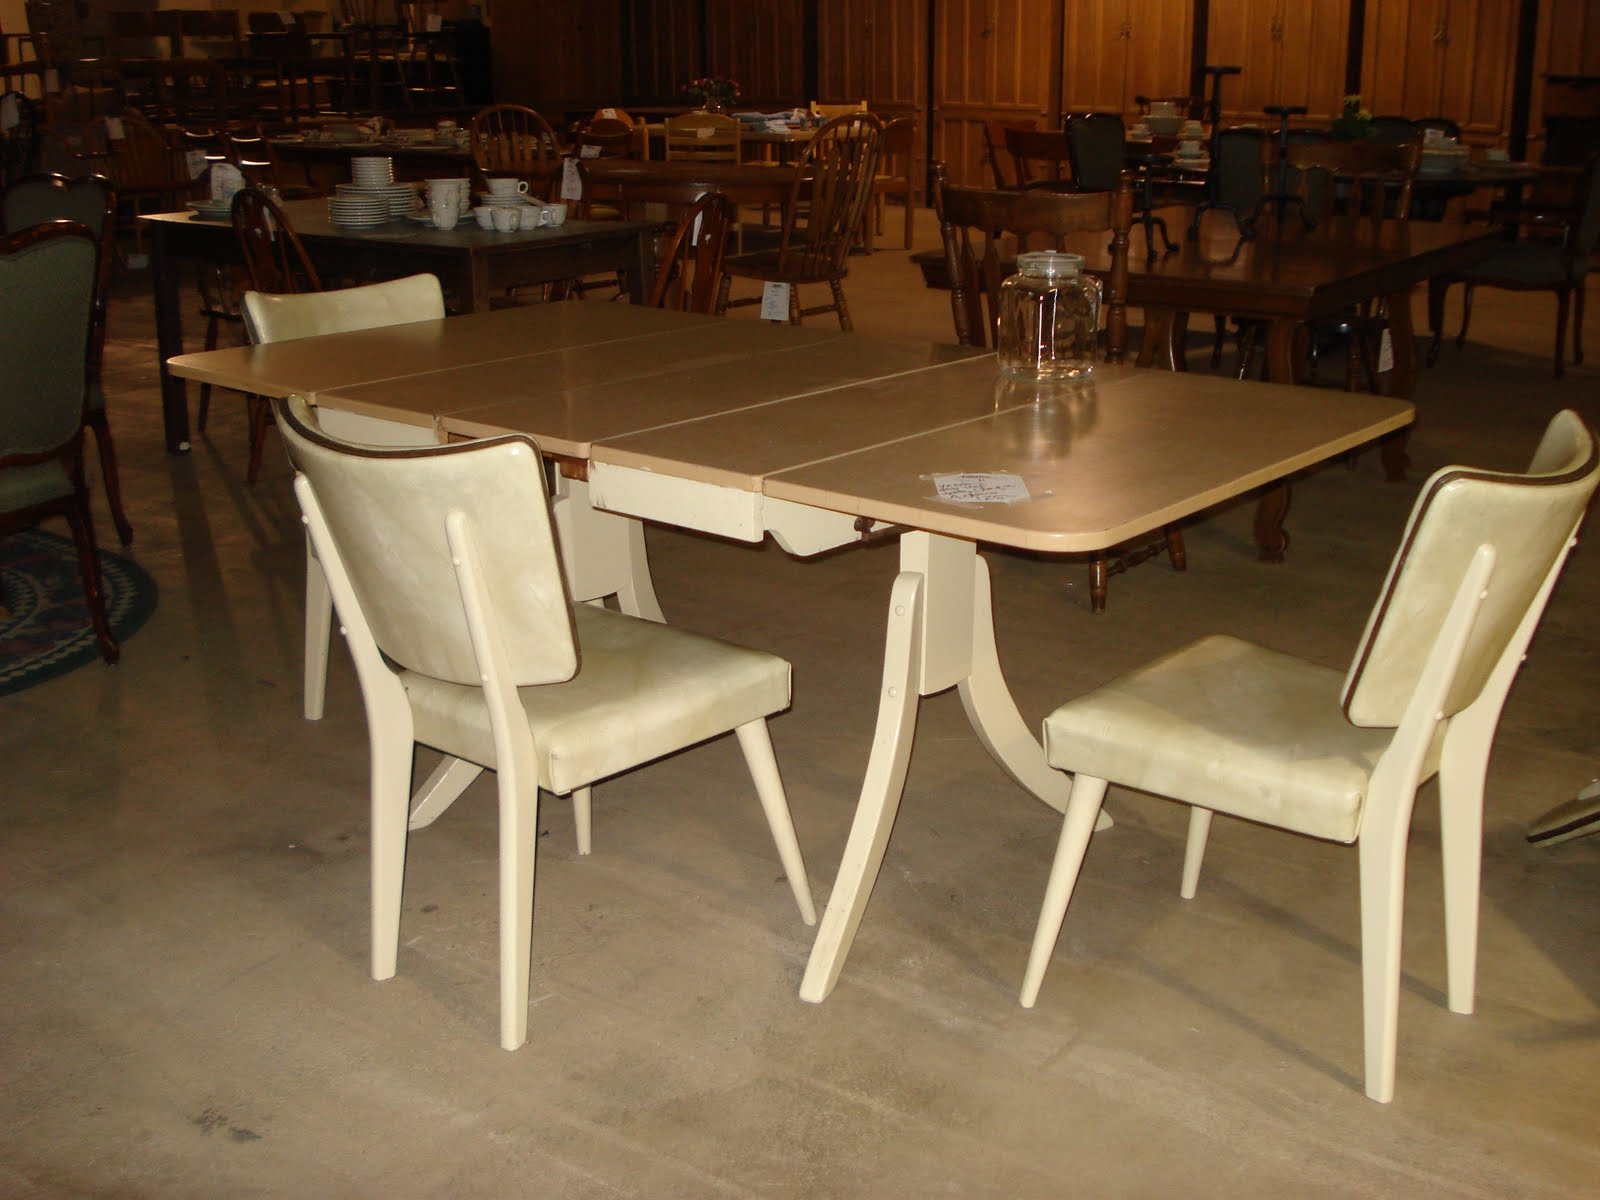 Meier and Pohlmann Furniture